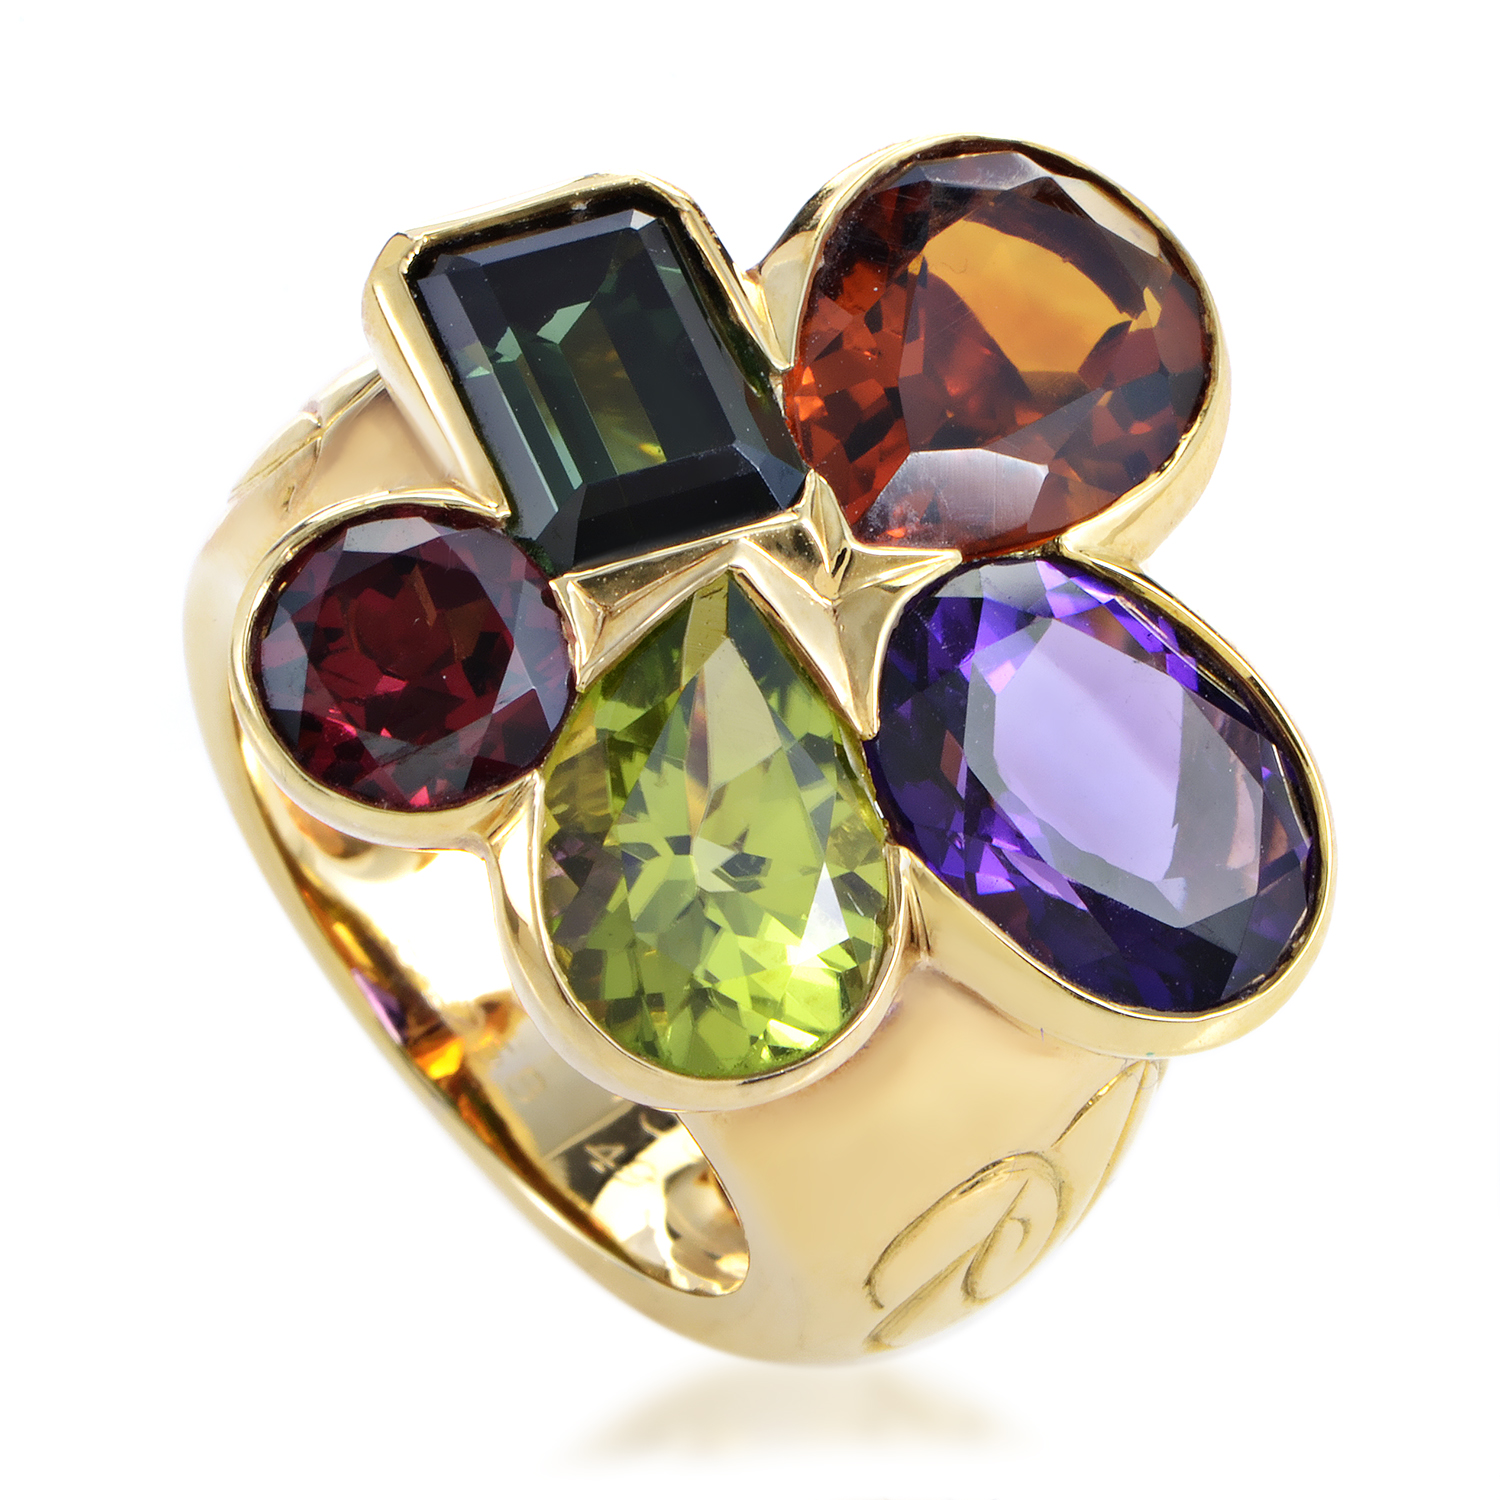 Dior Women's 18K Yellow Gold Multi-Gemstone Cluster Ring